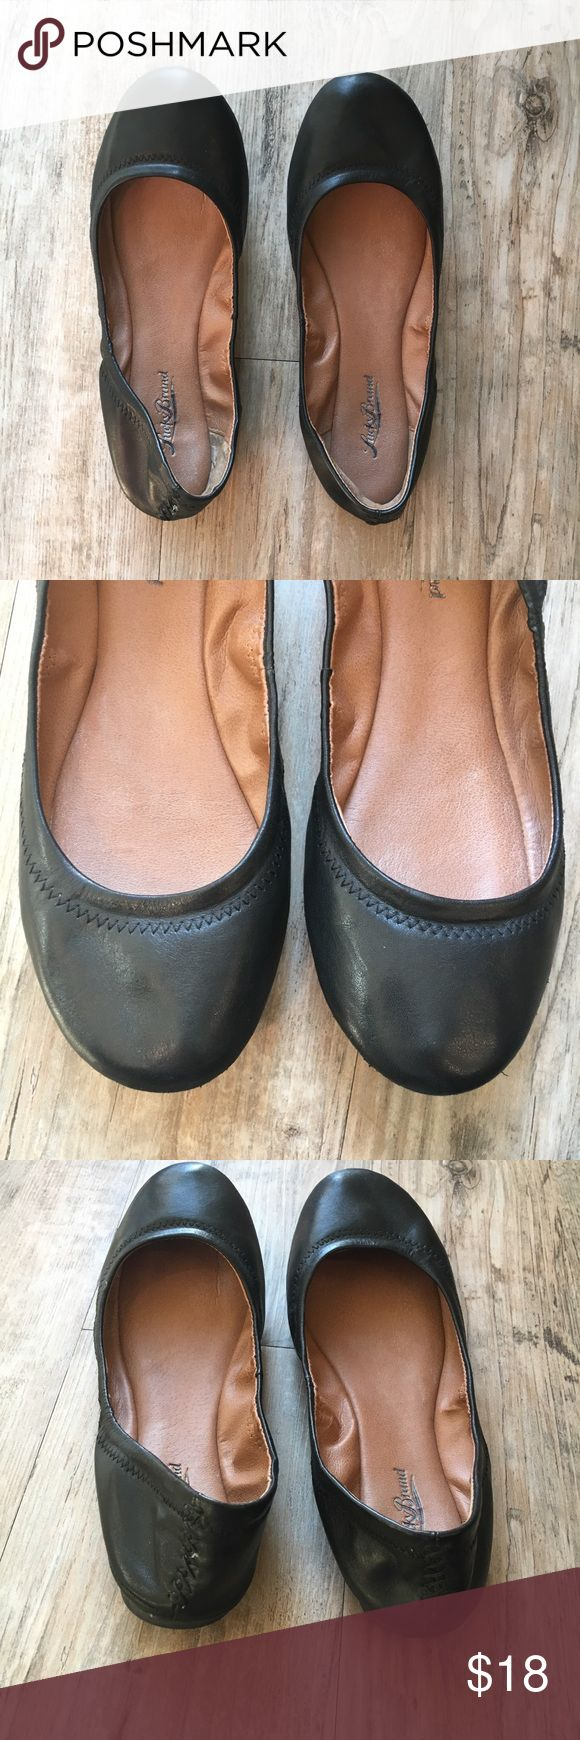 Black Lucky Brand Flats Size 7.5 Black Leather Lucky Brand Flats. Cute stitching detail around top of shoe. Size 7.5 Lucky Brand Shoes Flats & Loafers